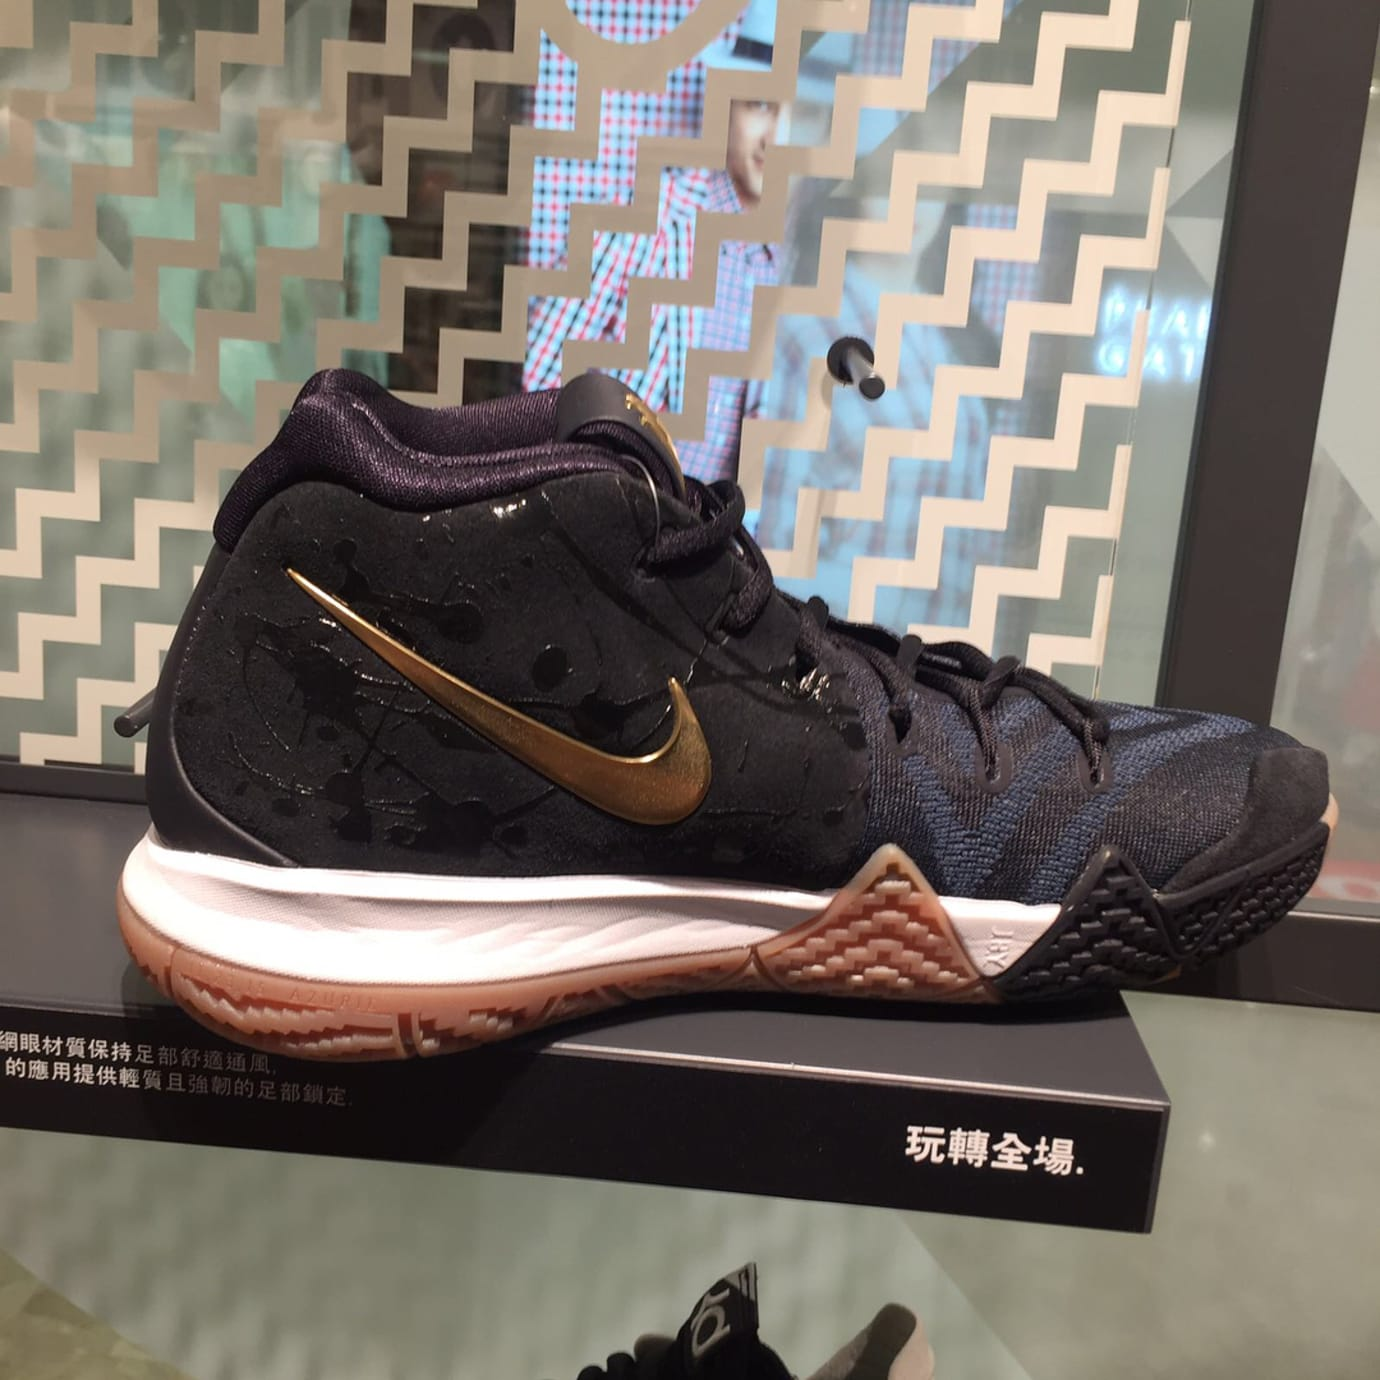 timeless design d6945 8b834 Nike Kyrie 4 Black Gold Gum Medial